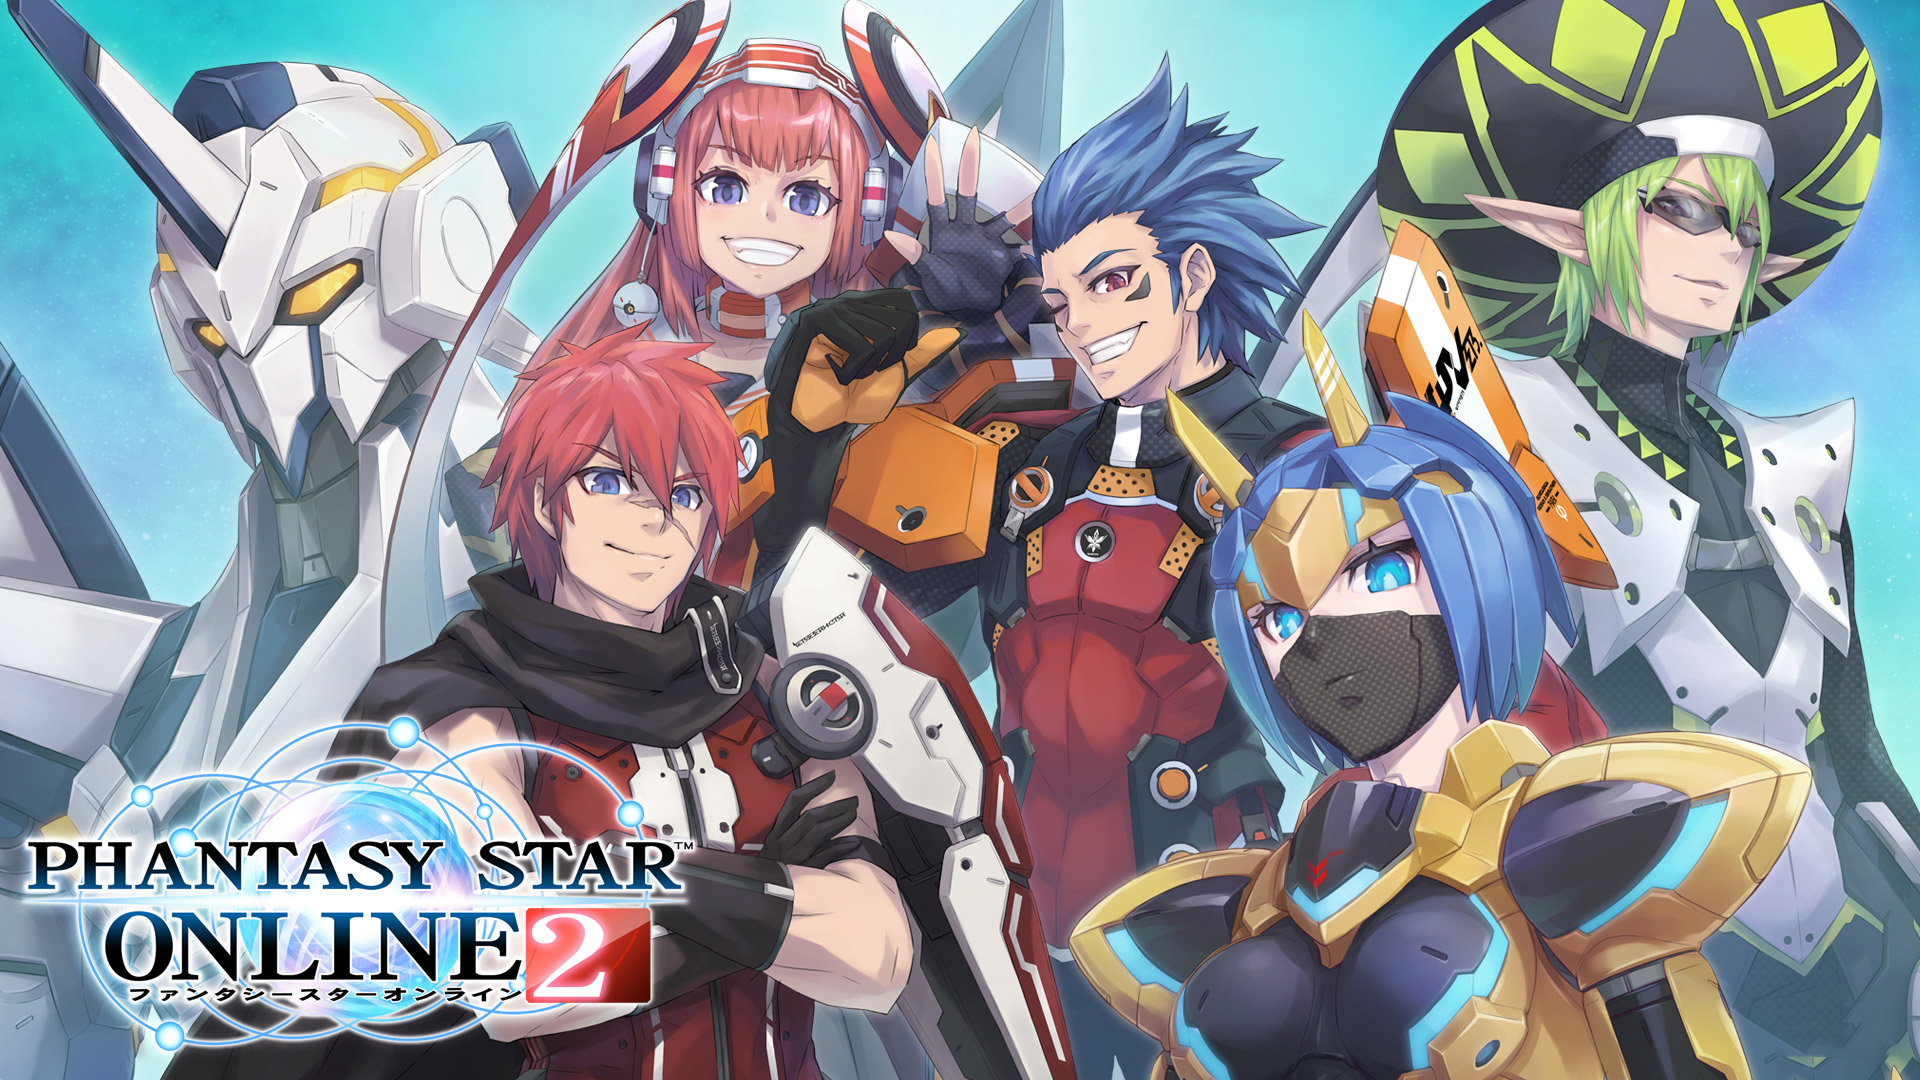 Free Phantasy Star Online 2 Wallpaper in 1920x1080